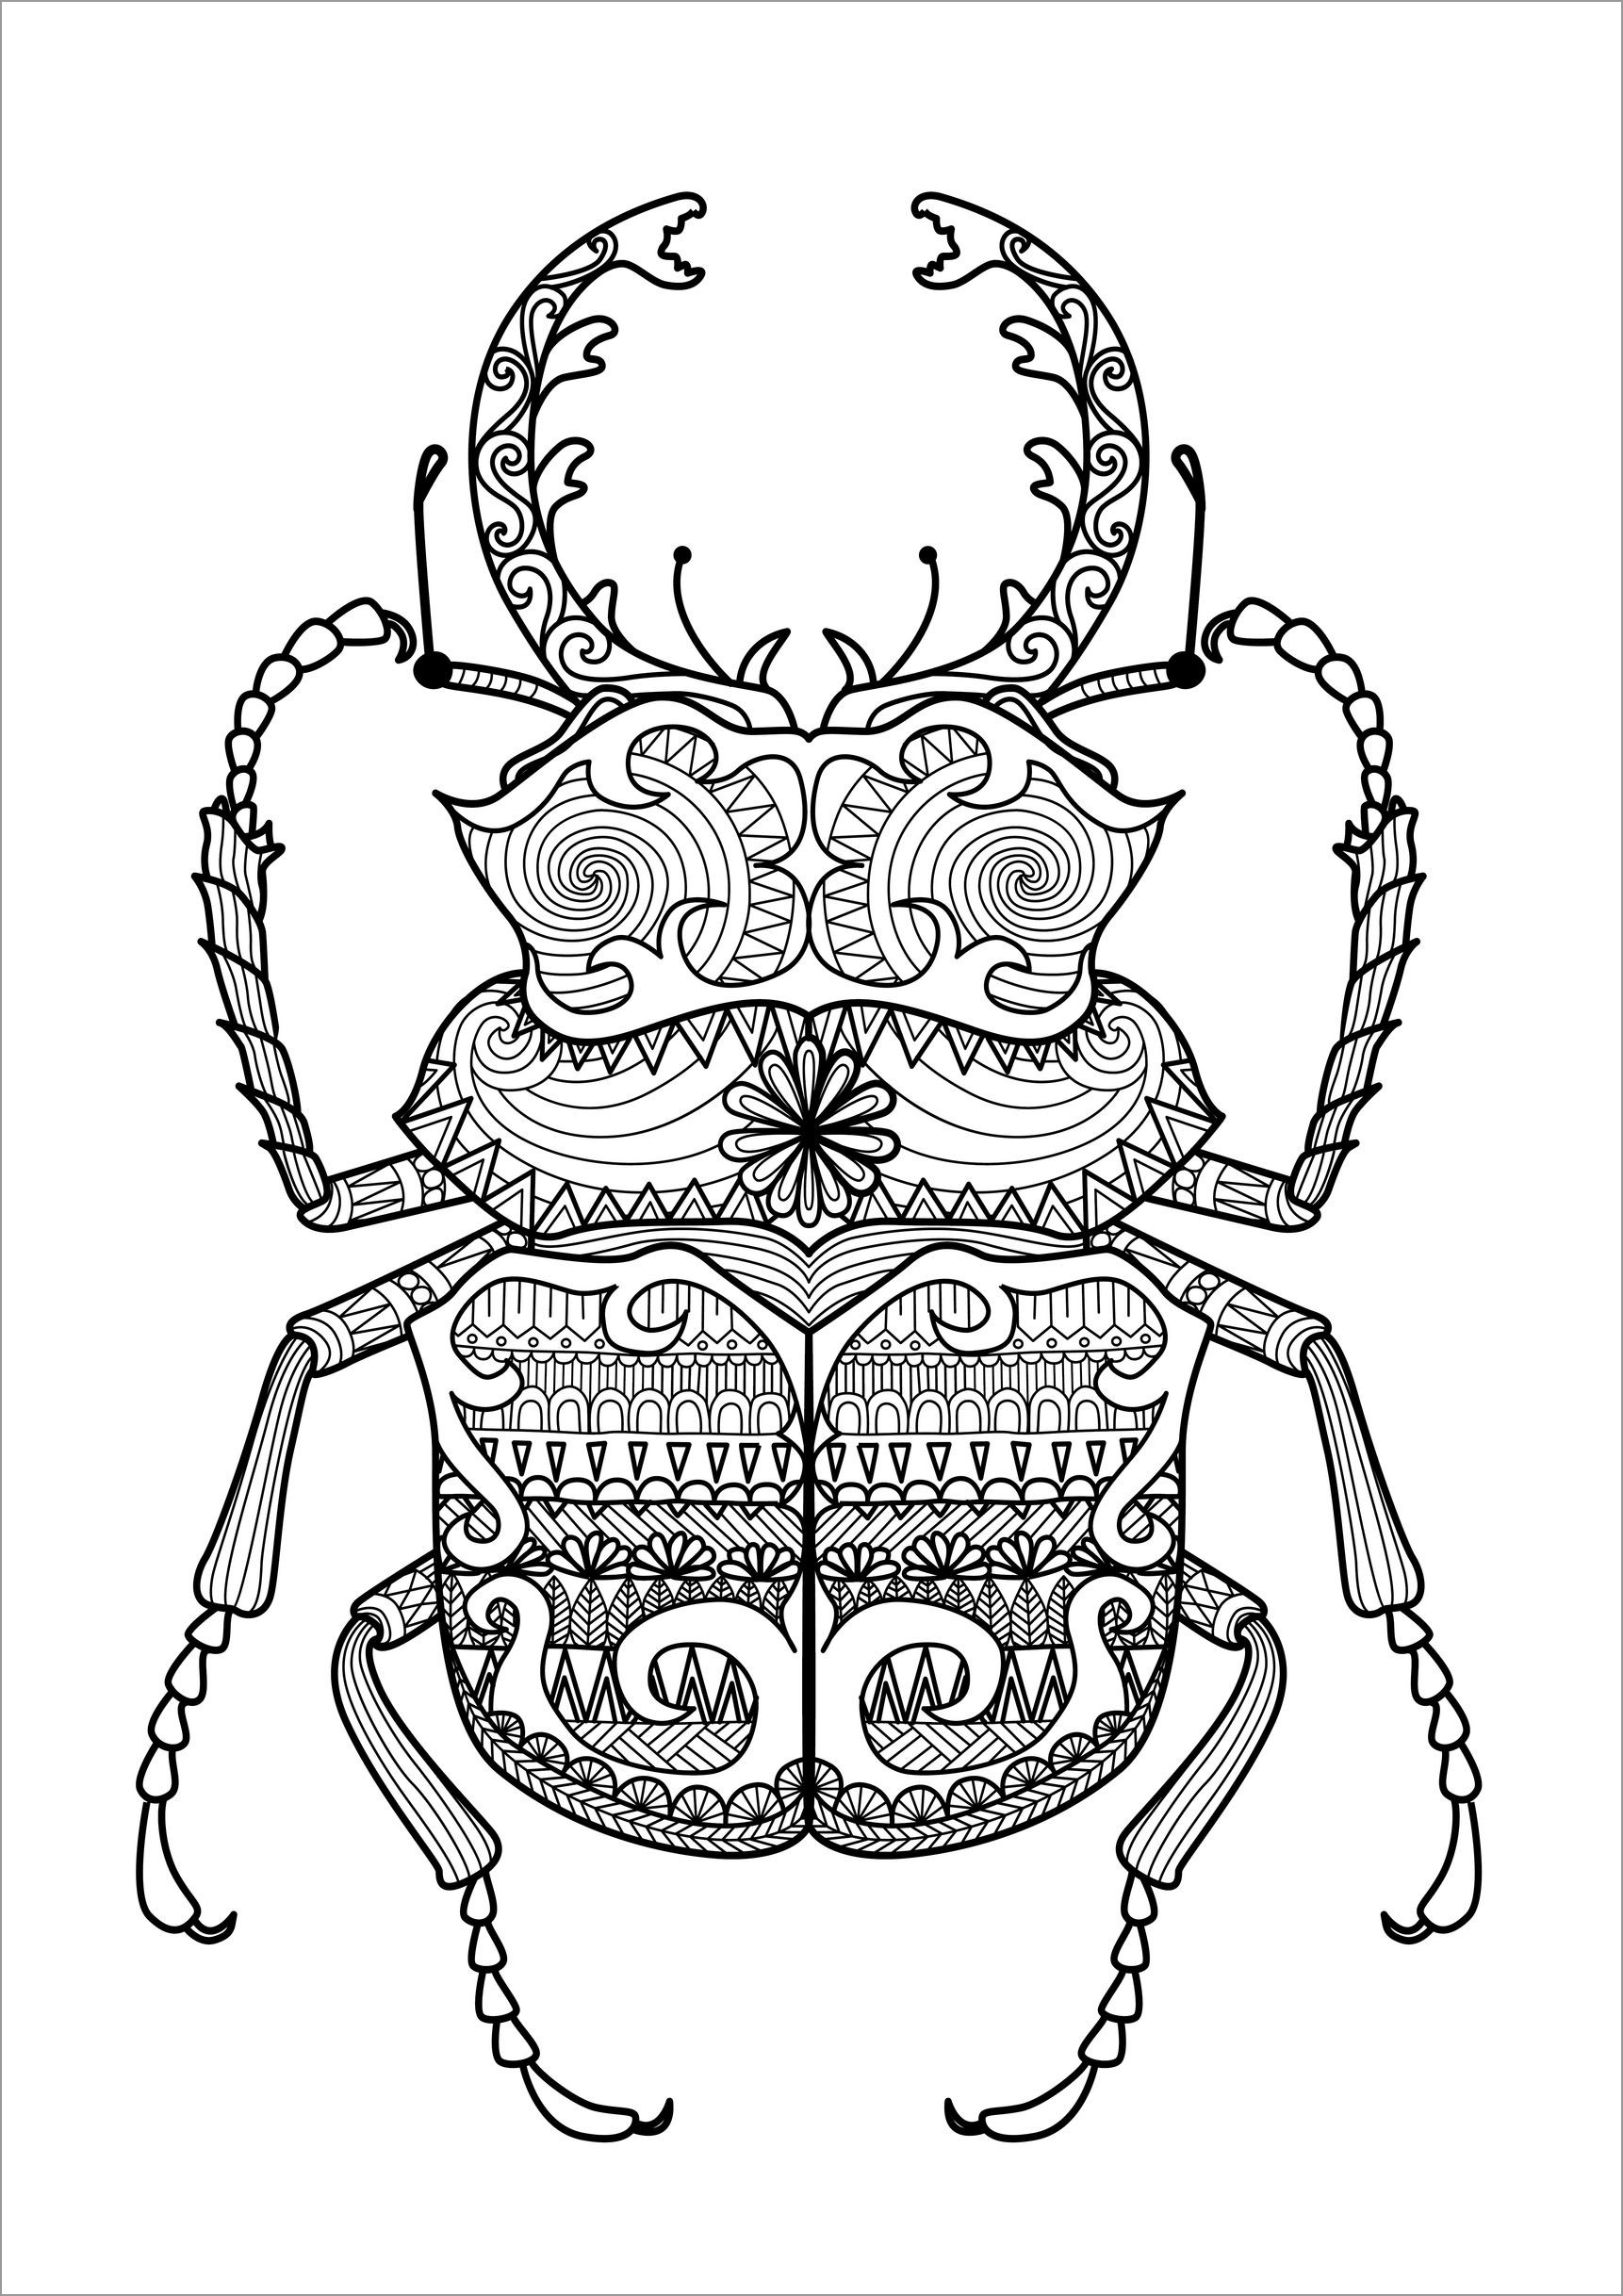 Zentangle Beetle Coloring Pages for Adult